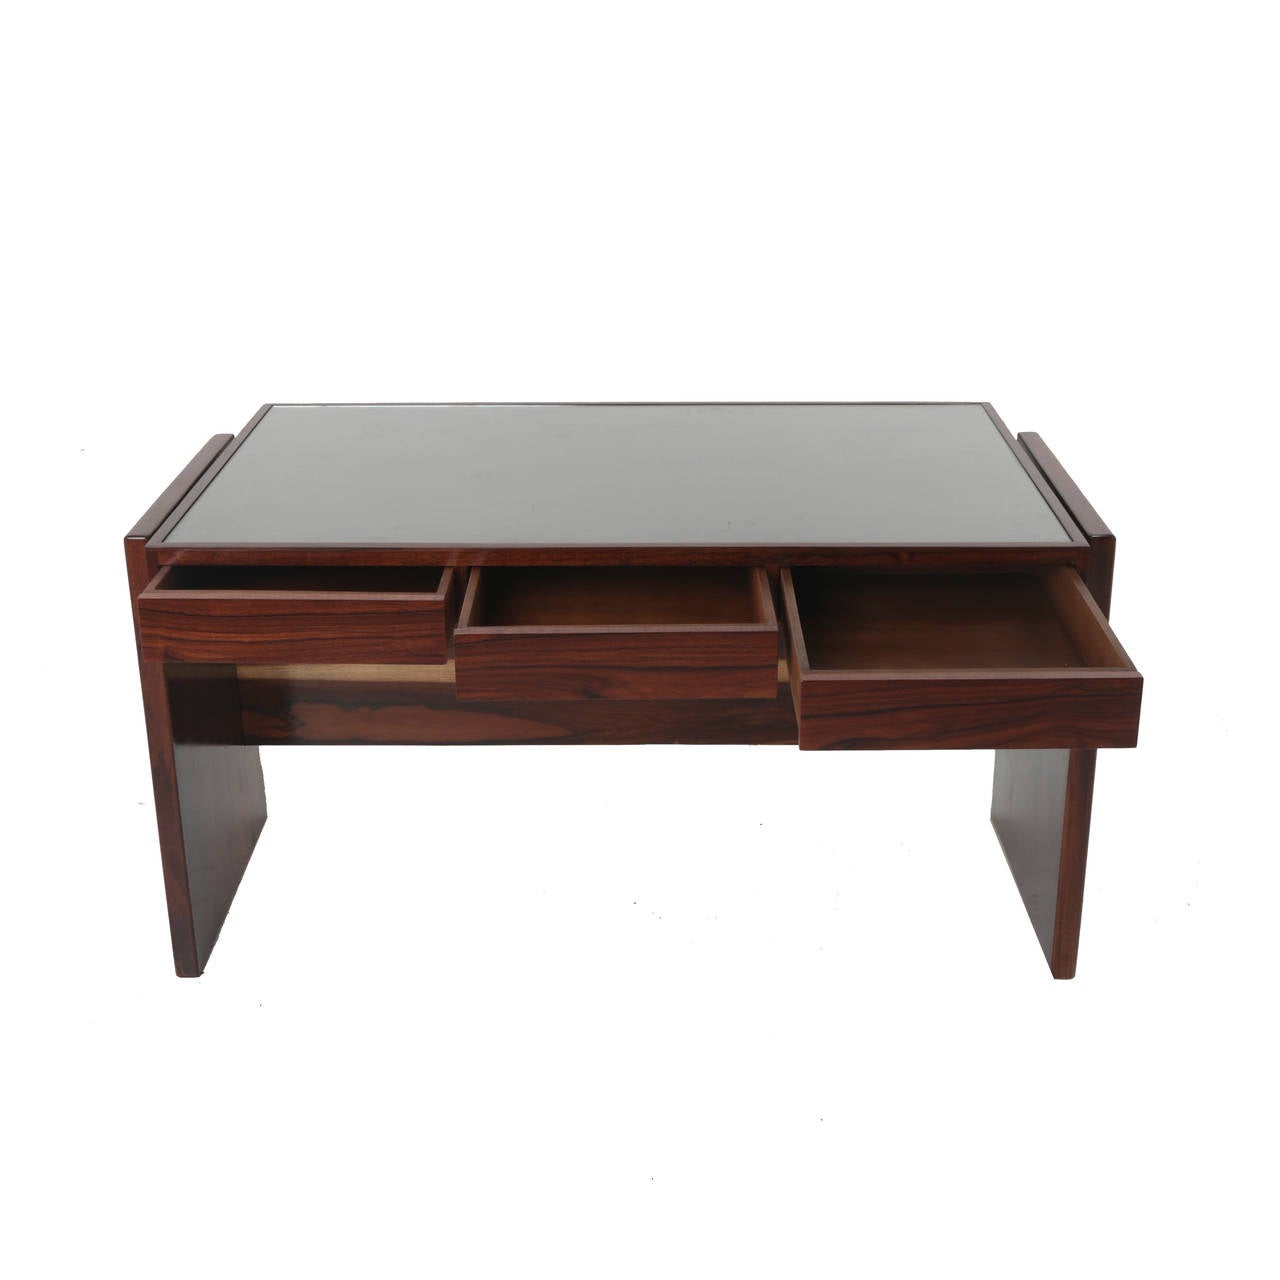 Rosewood and Glass Desk by Joaquim Tenreiro For Sale 2